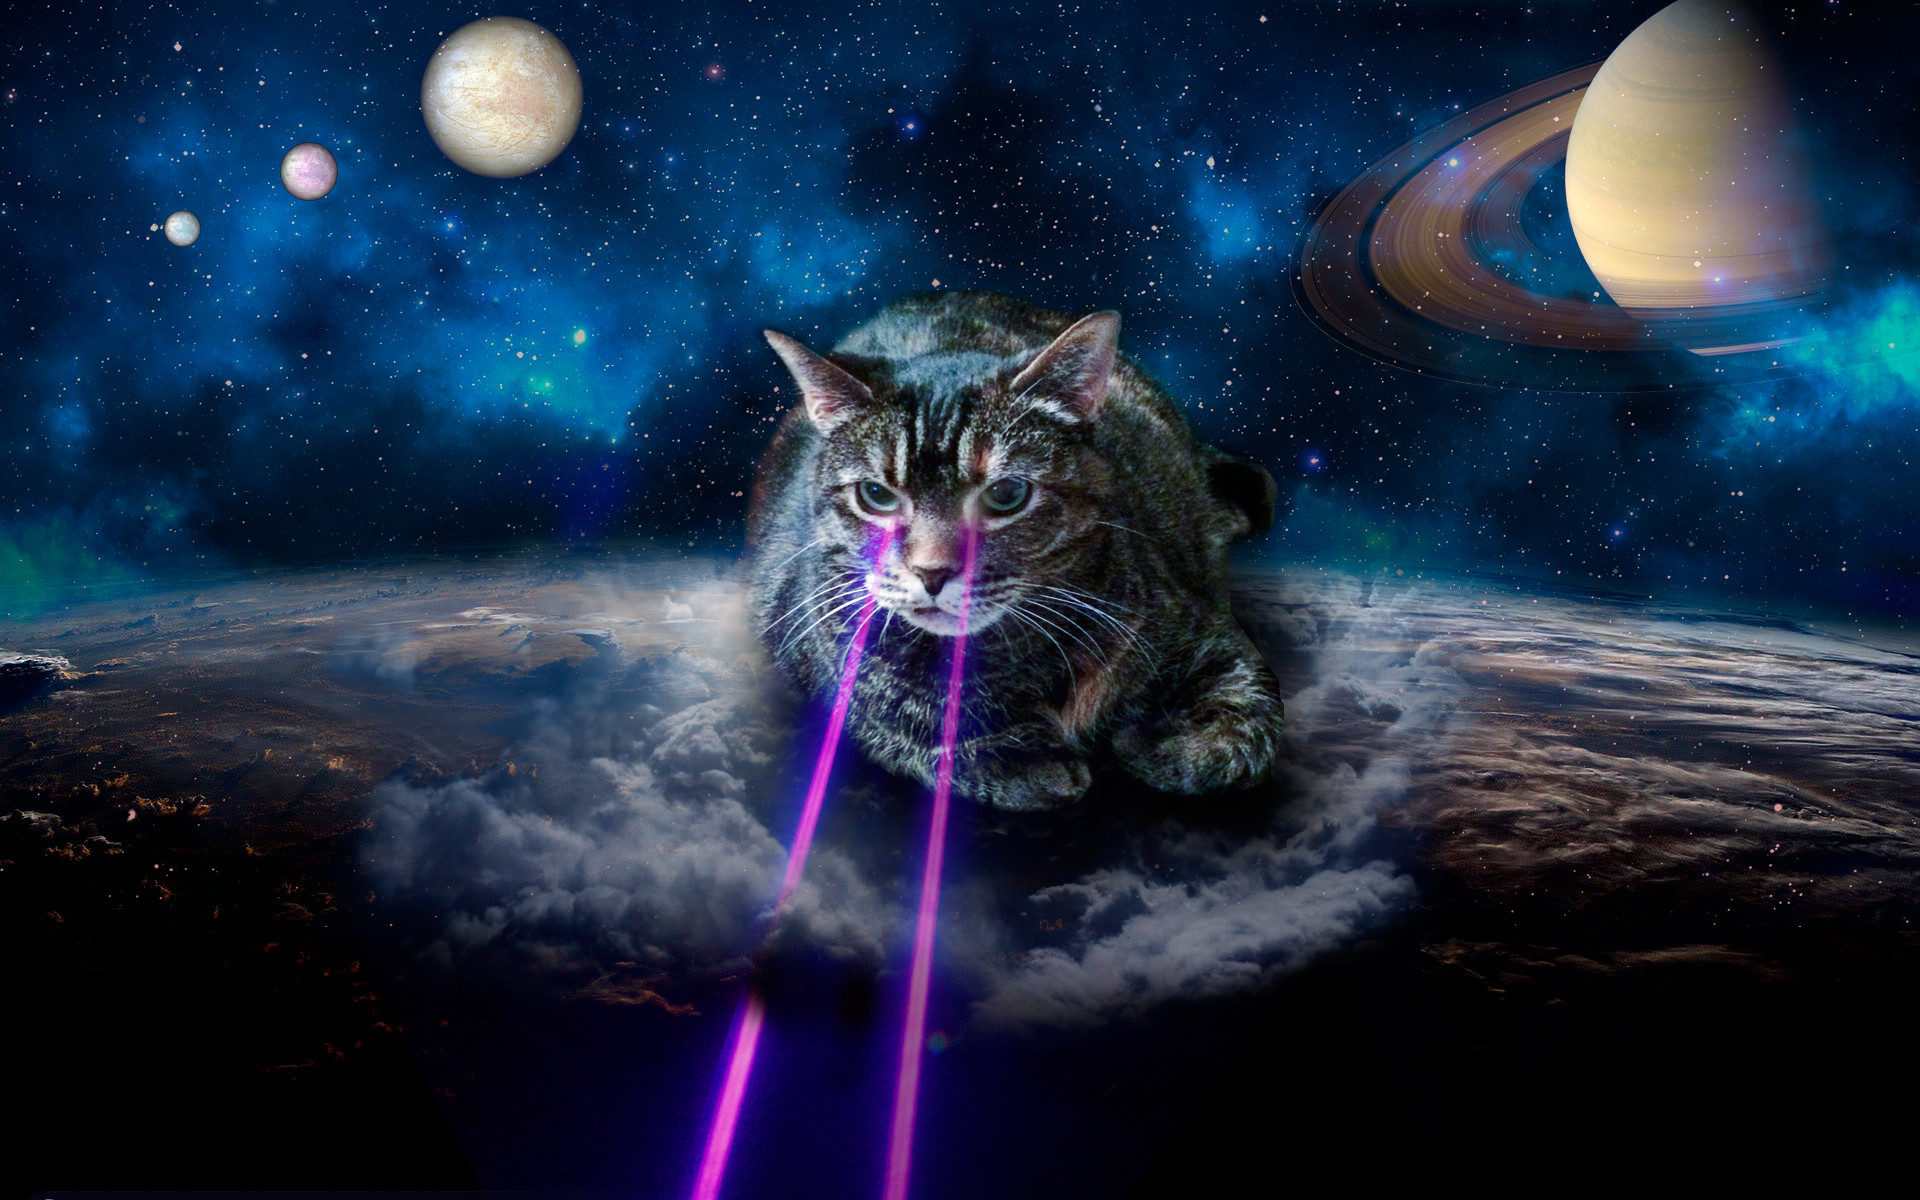 Cute Background Wallpaper For Computer Christmas Lights Animal Hd Shrine Of Laser Cats Wonkeyweb